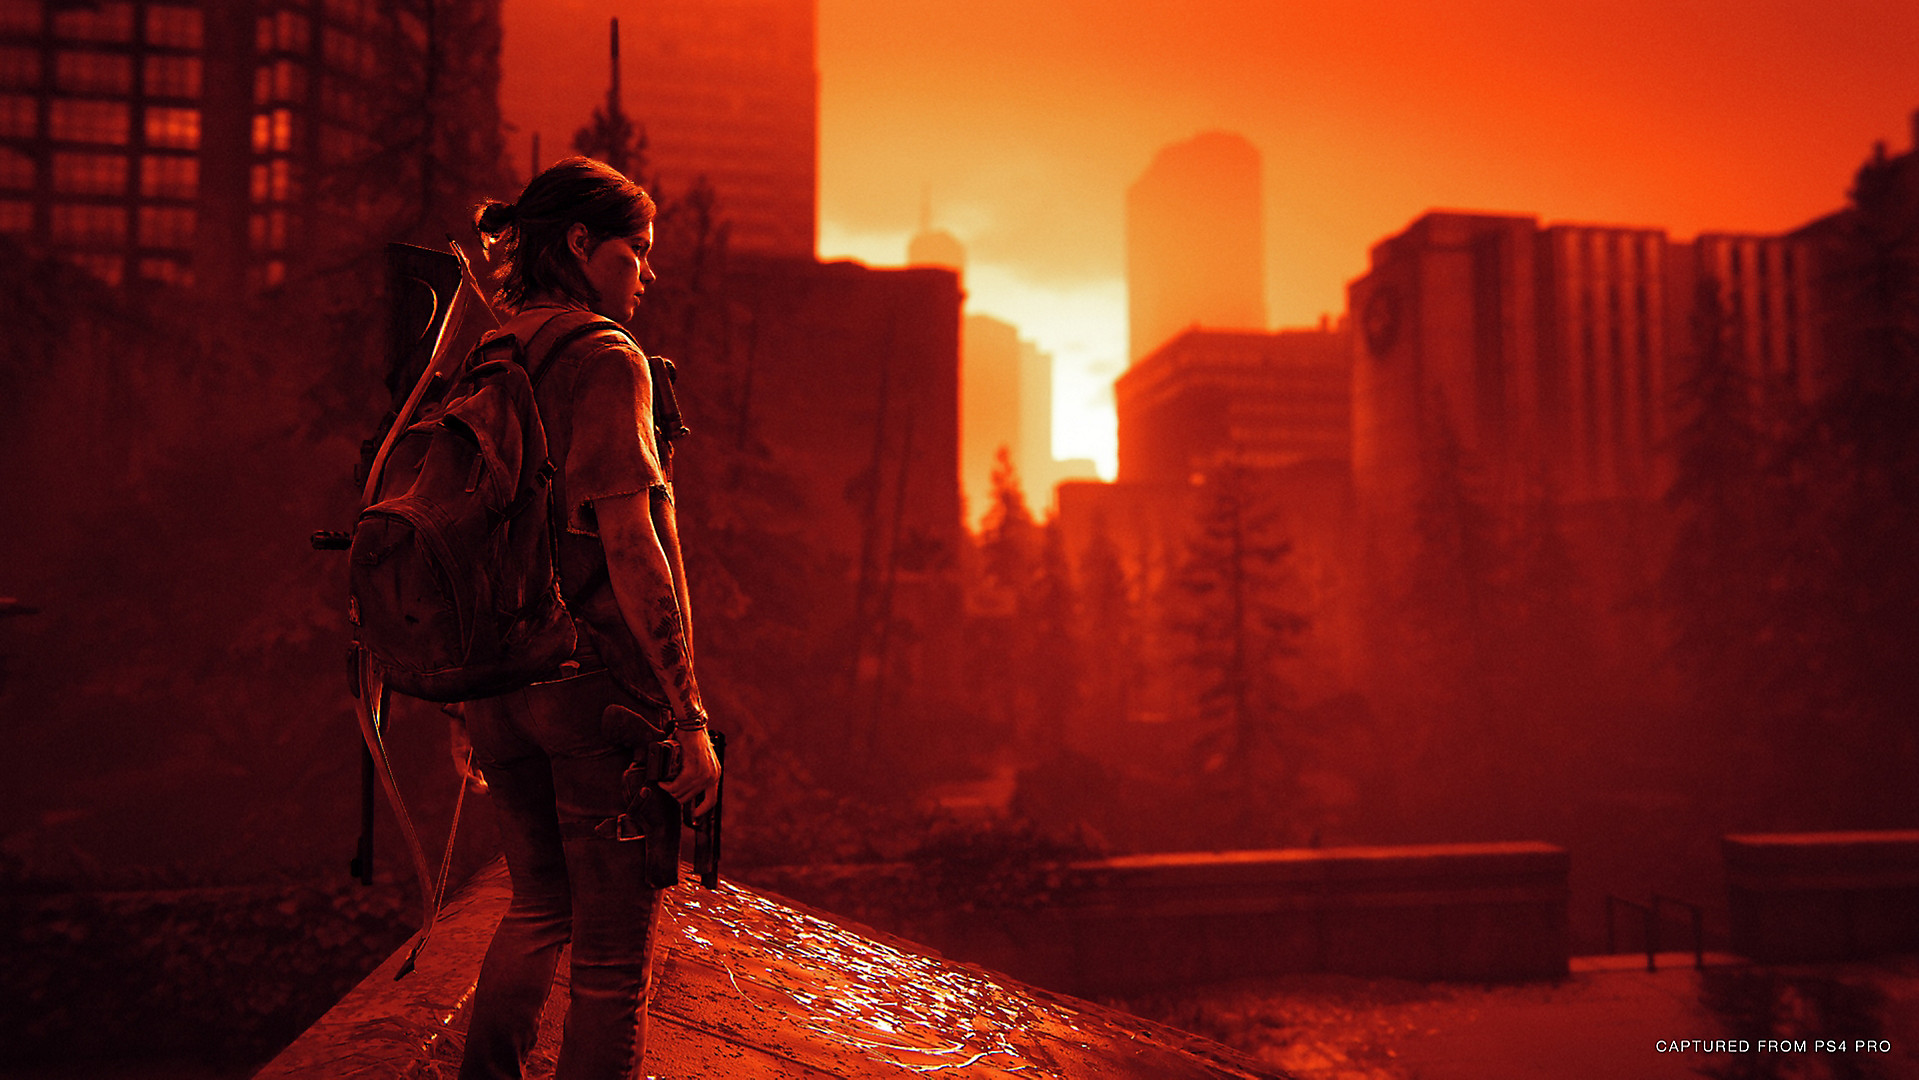 The Last of Us Part II has to be coming to PS5, right?